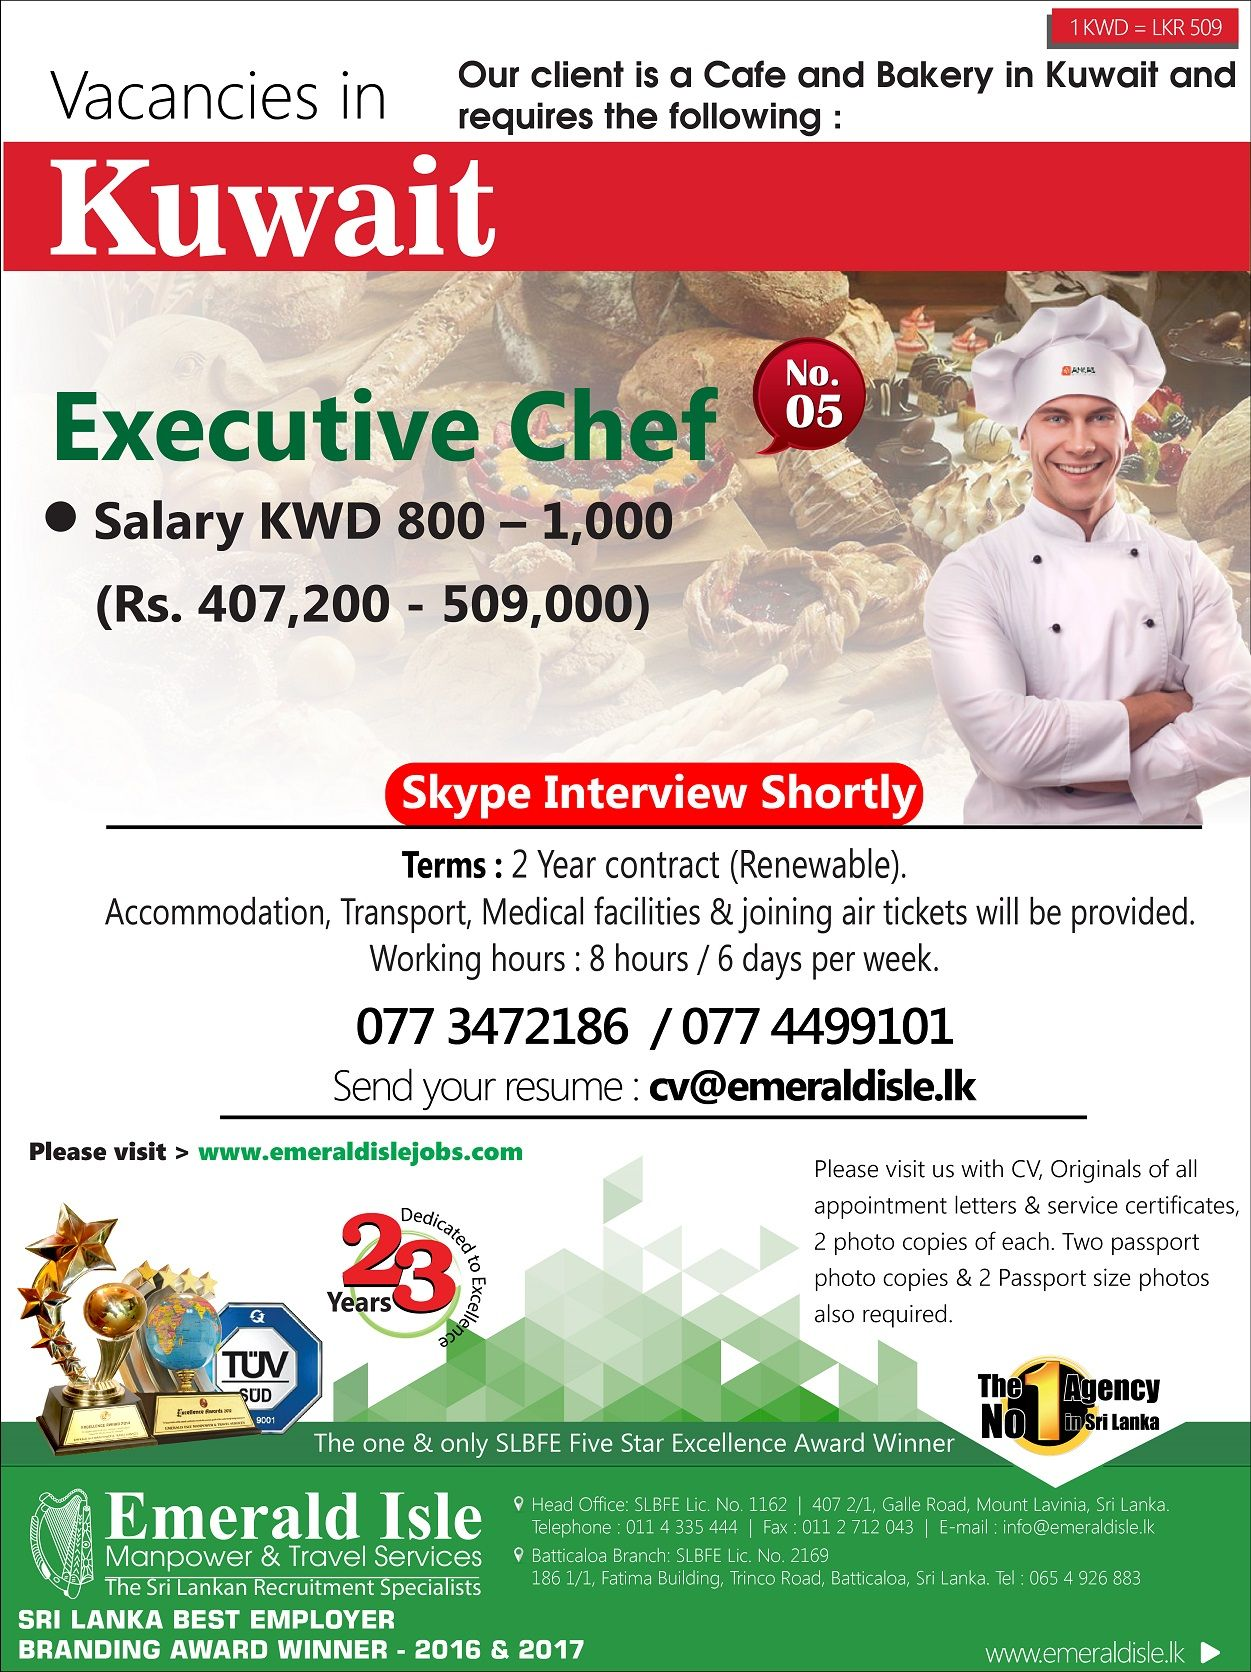 Pin by Emerald Isle Manpower & Travel Services on Foreign Vacancies Kuwait